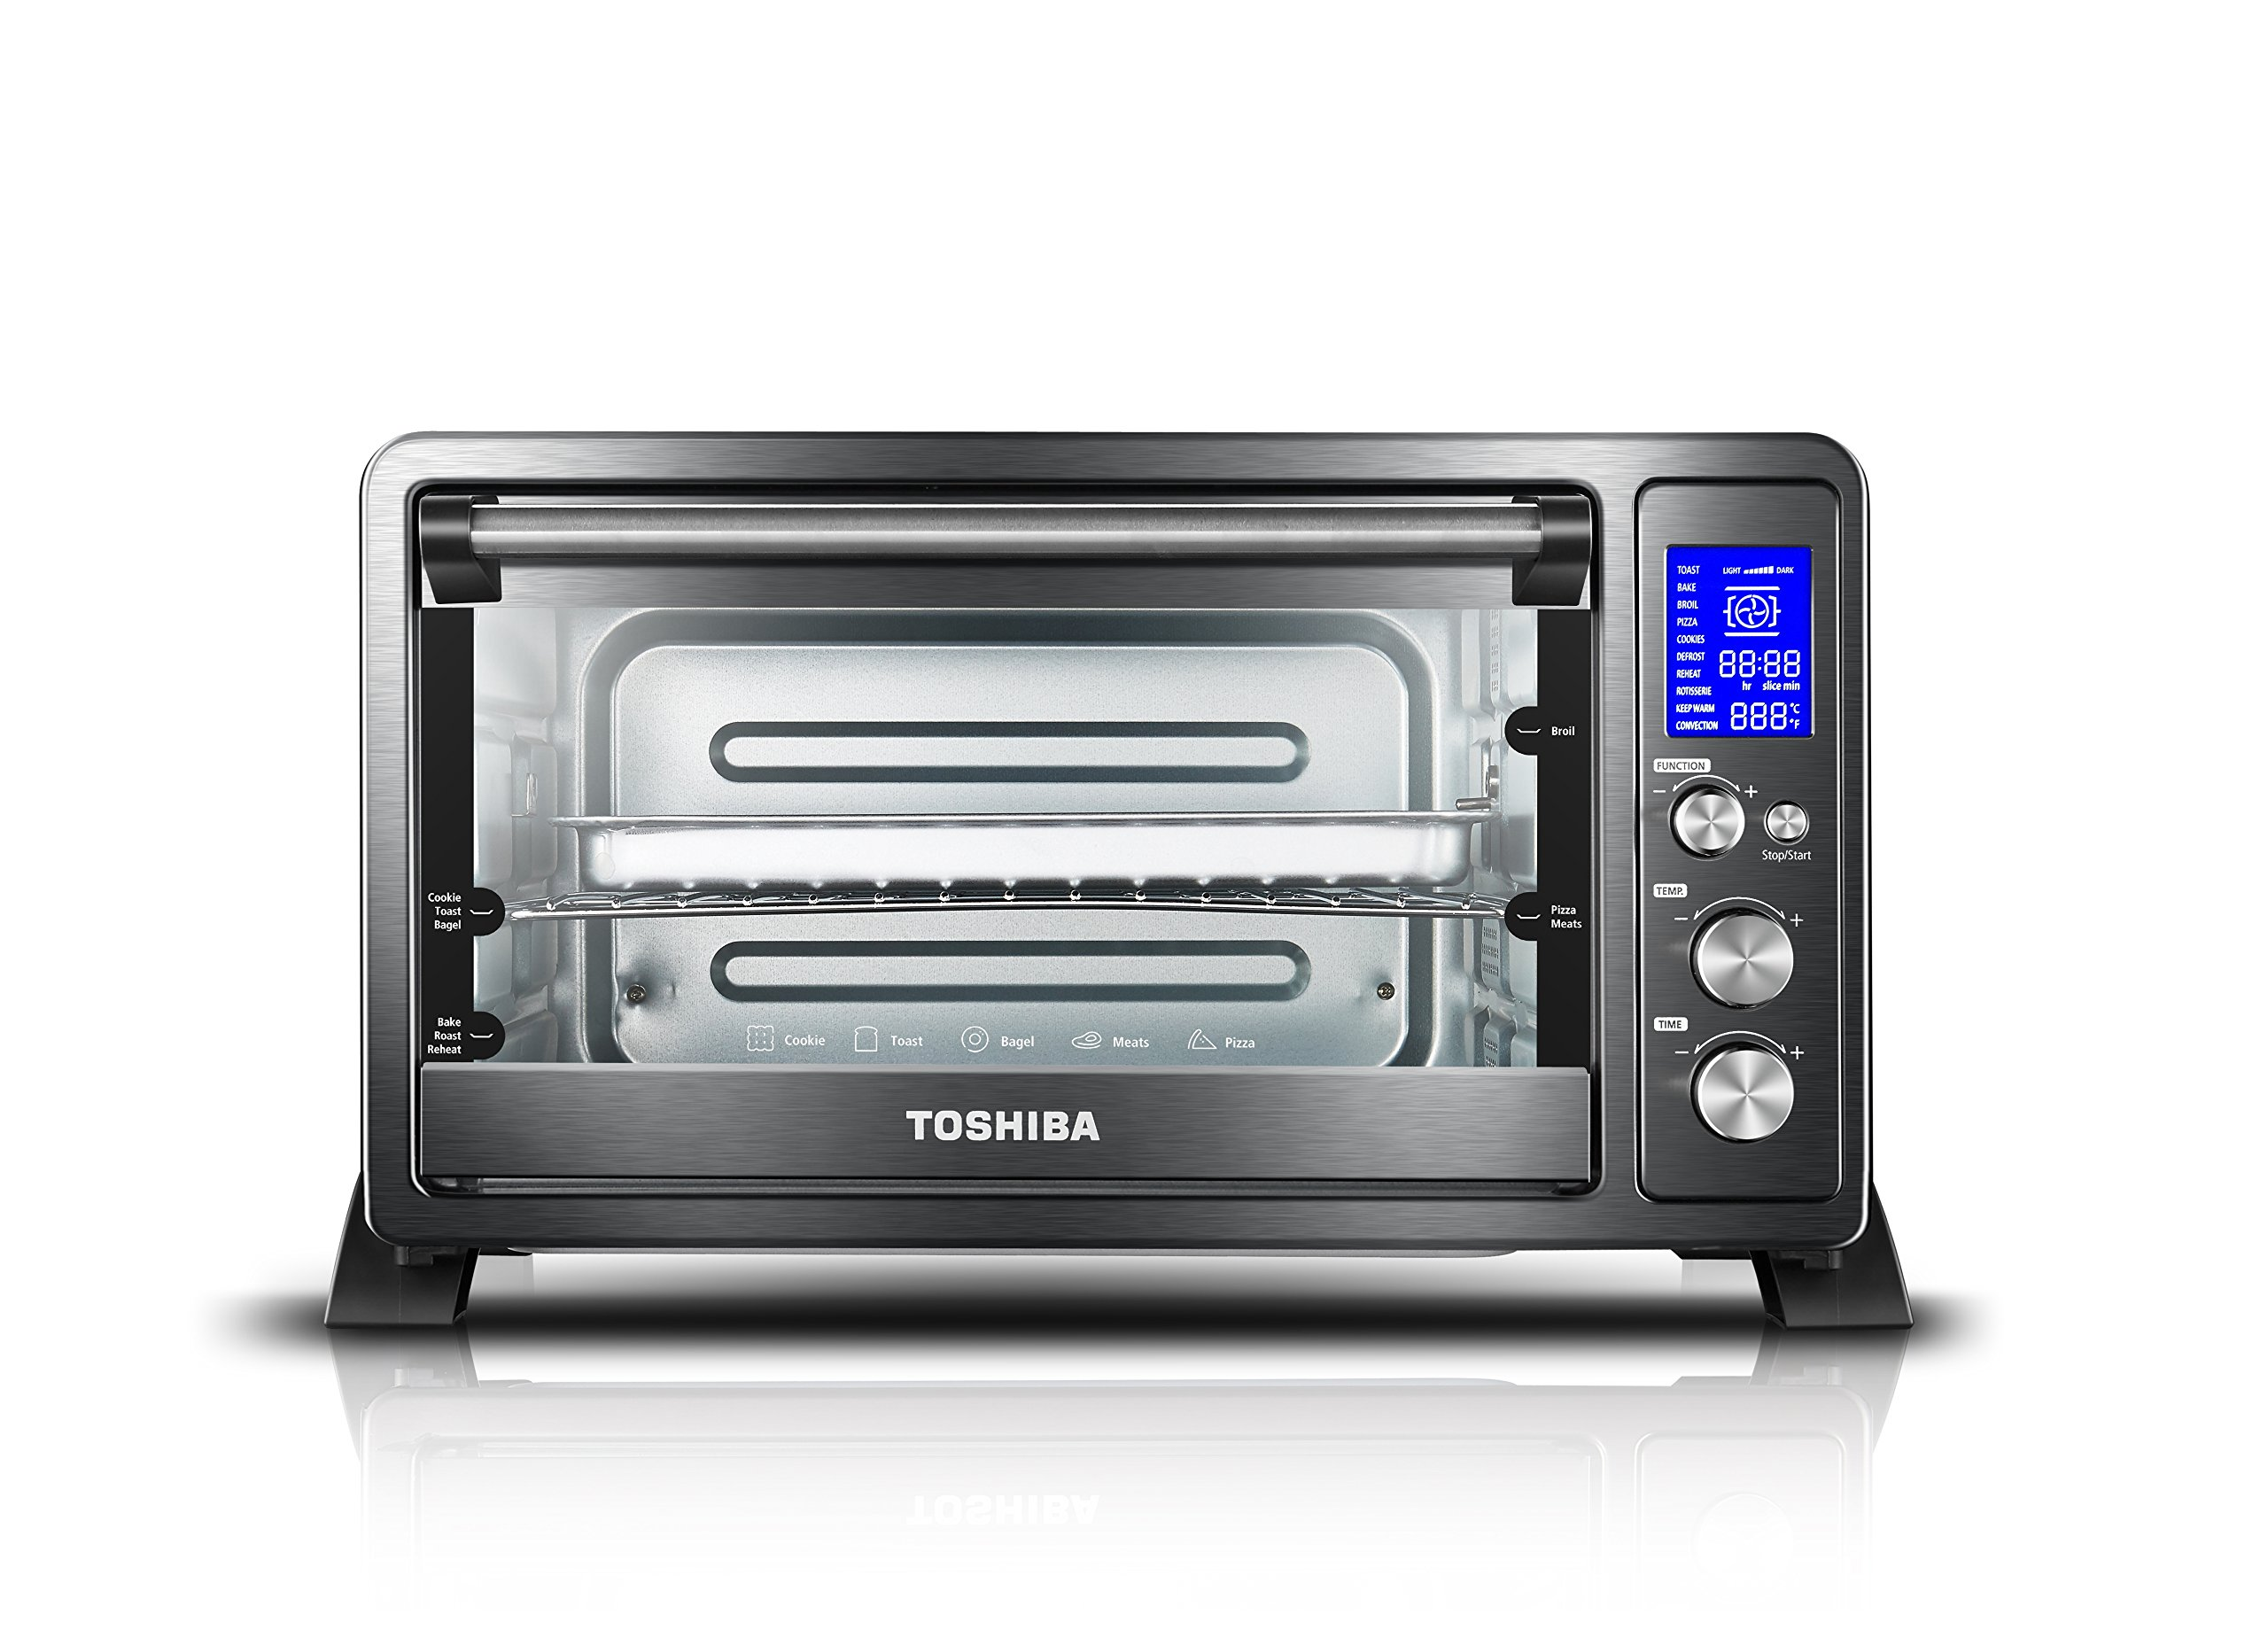 Toshiba AC25CEW-BS Digital Oven with Convection/Toast/Bake/Broil Function, 6-Slice Bread/12-Inch Pizza, Black Stainless Steel